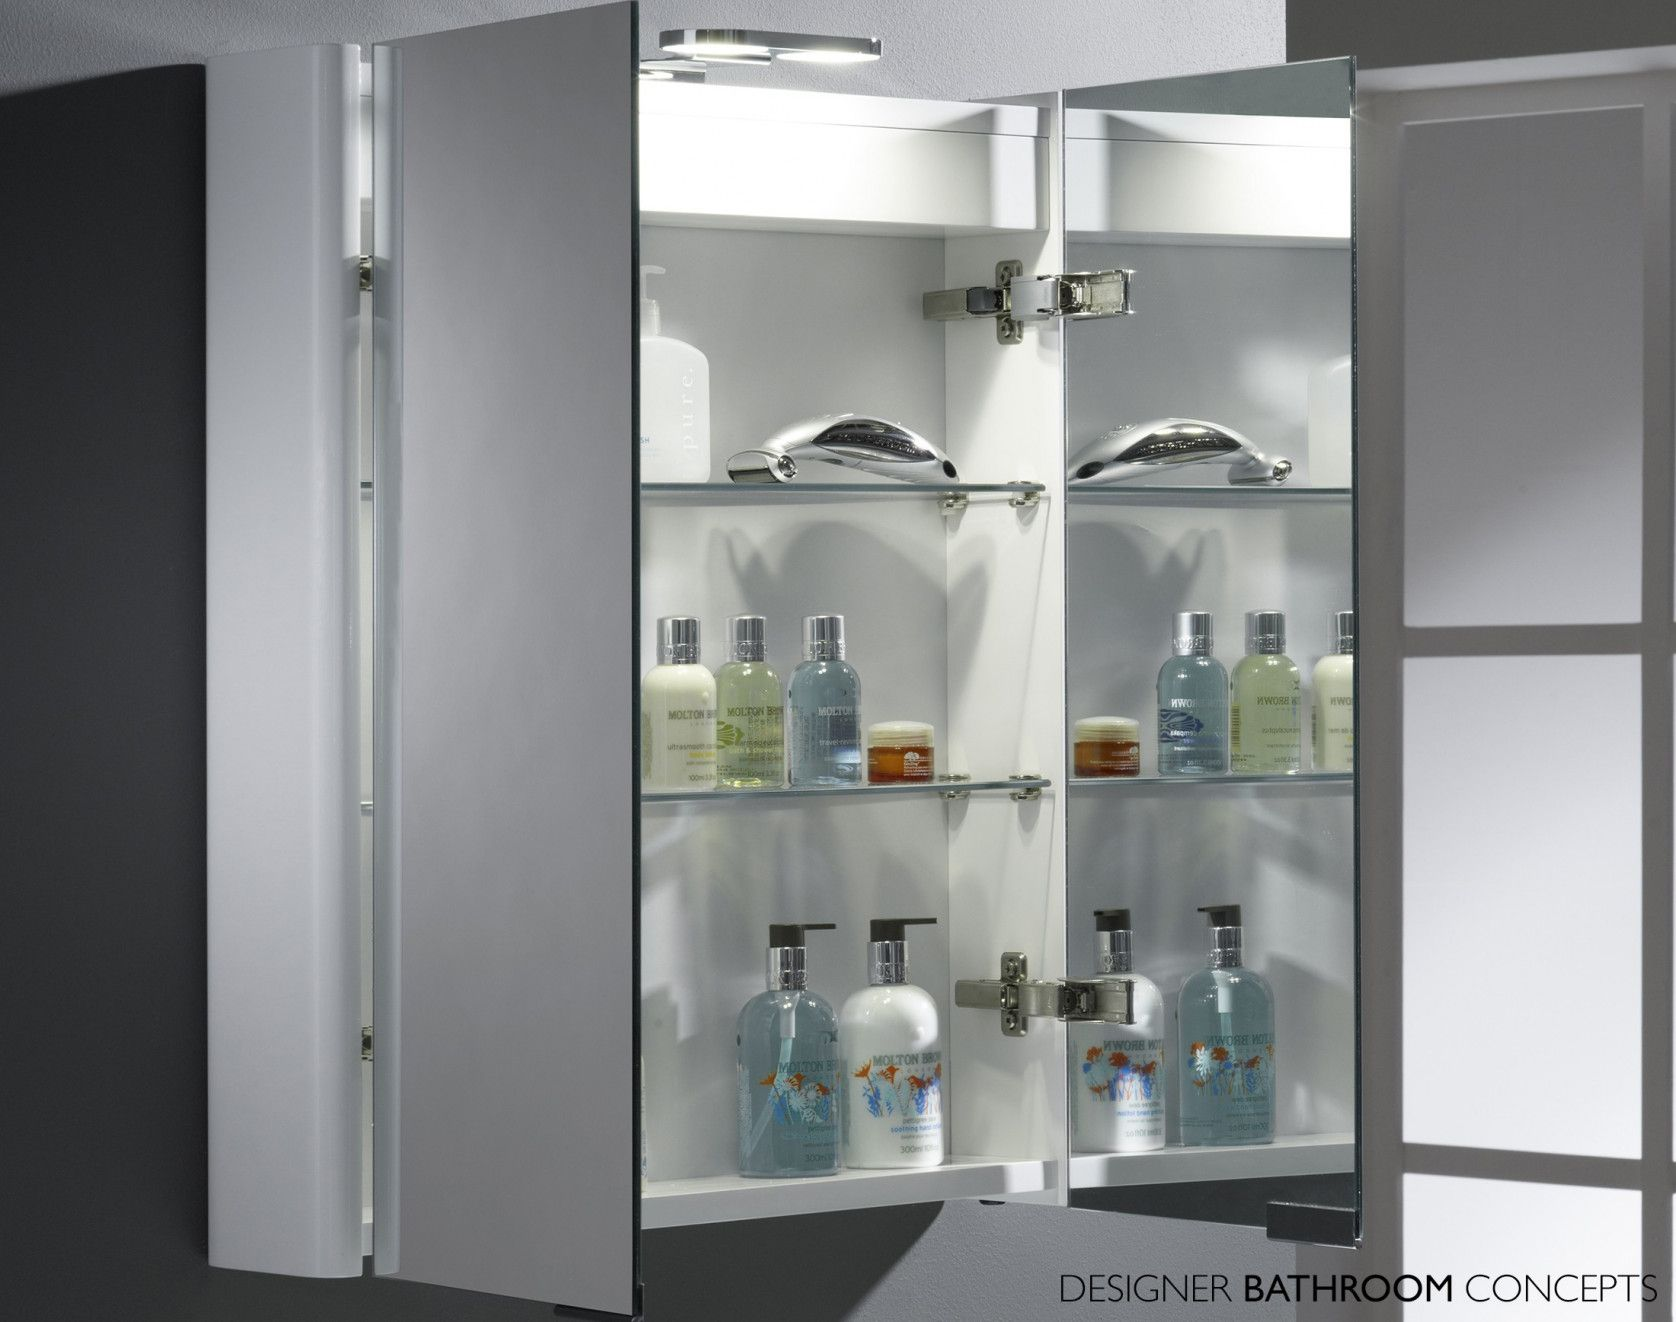 20 Double Sided Mirror Bathroom Cabinet Kitchen Shelf Display Ideas Check More At Http